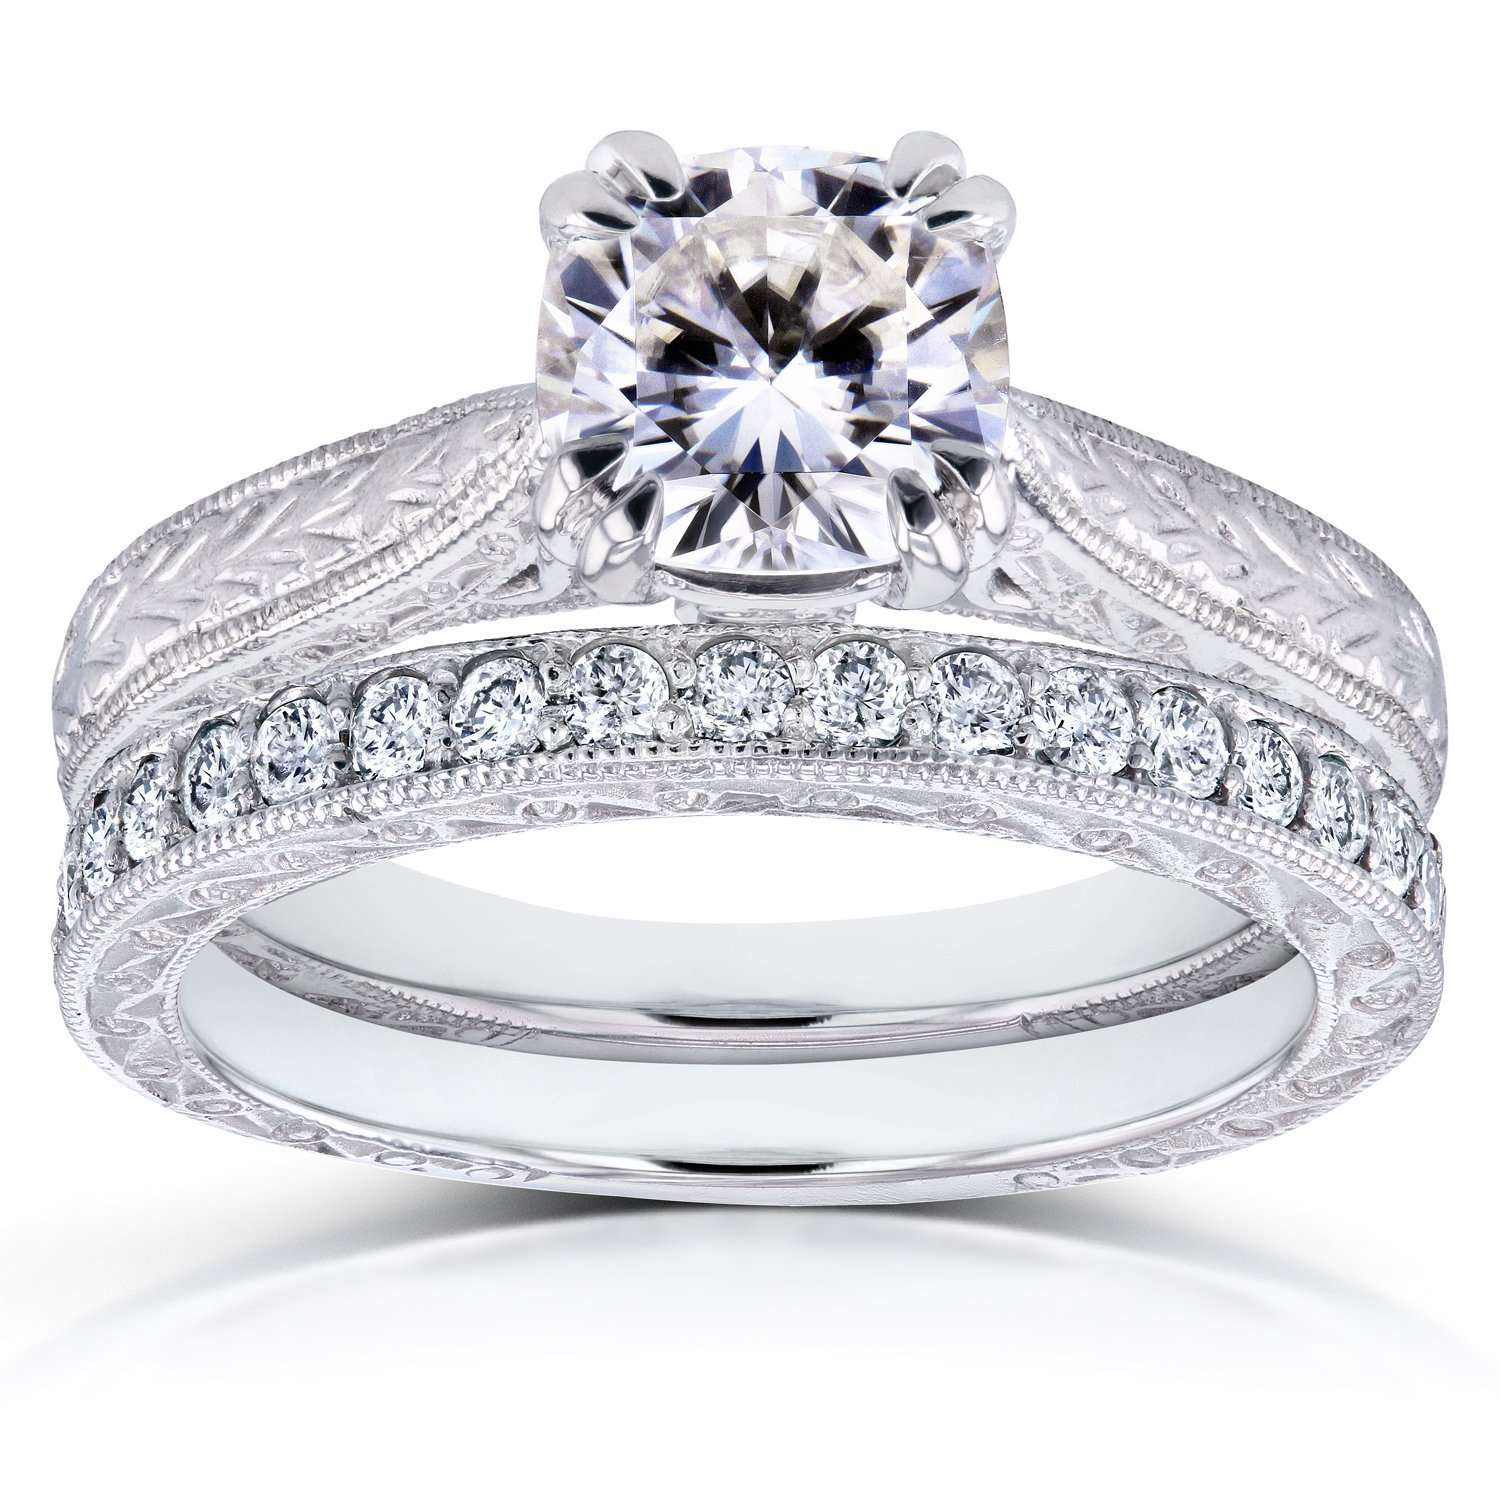 Top Near-Colorless (F-G) Cushion Moissanite and Diamond Antique Engraved Bridal Rings Set 1 1/3 CTW 14k White Gold - 9